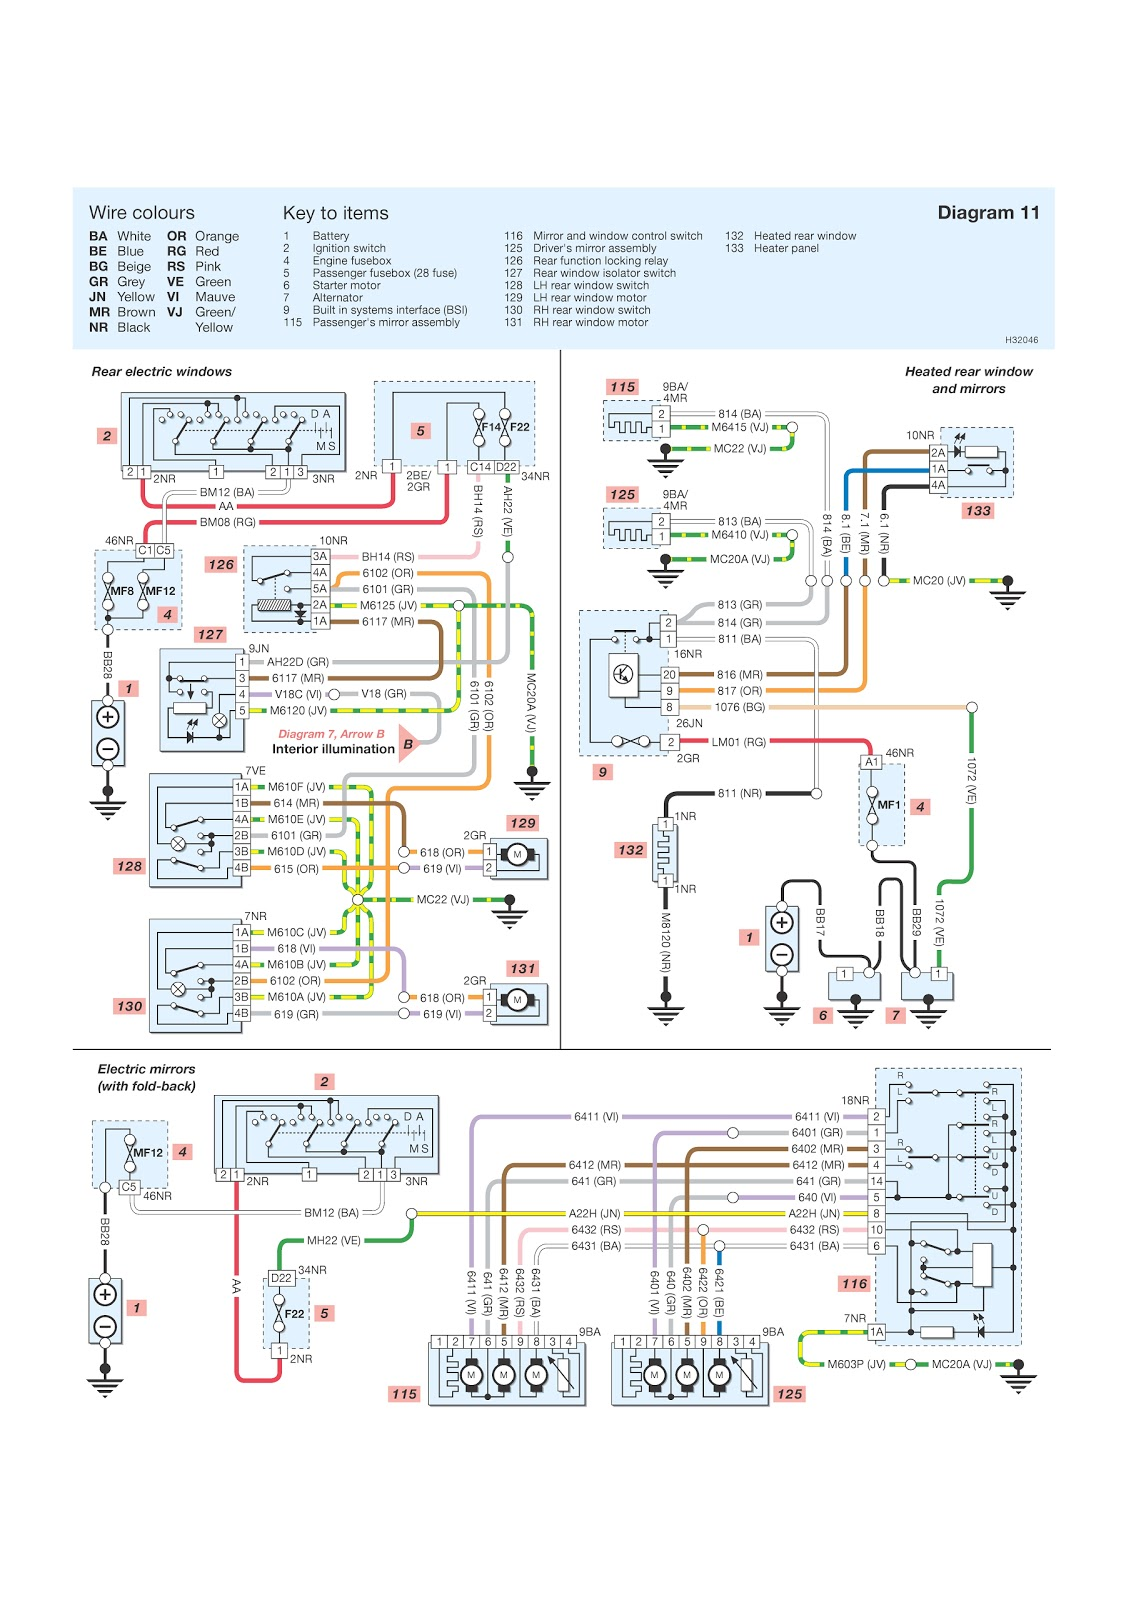 Peugeot 206 Wiring Diagram For Car Alarm | Wiring Diagram on jaguar parts diagrams, jaguar mark 2, jaguar growler, jaguar rear end, jaguar gt, 2005 mini cooper parts diagrams, jaguar hardtop convertible, jaguar shooting brake, jaguar e class, jaguar racing green, jaguar 2 door, jaguar 2014 models, jaguar fuel pump diagram, jaguar wagon, jaguar exhaust system, jaguar mark x, jaguar xk8 problems, dish network receiver installation diagrams, jaguar electrical diagrams, jaguar r type,